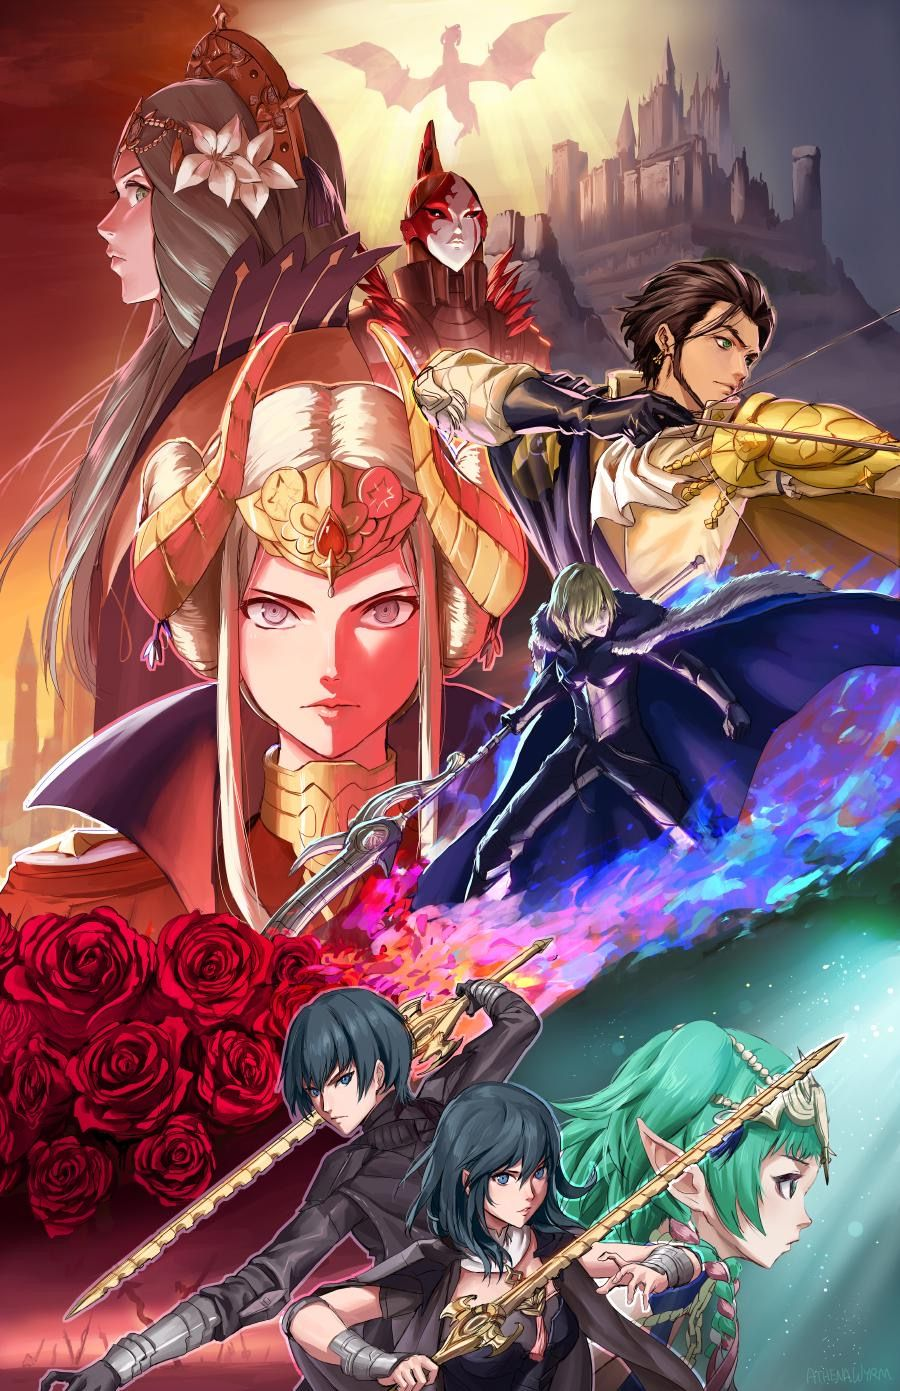 Pin By Kaito On Fire Emblem Three Houses Fire Emblem Fire Emblem Characters Fire Emblem Wallpaper